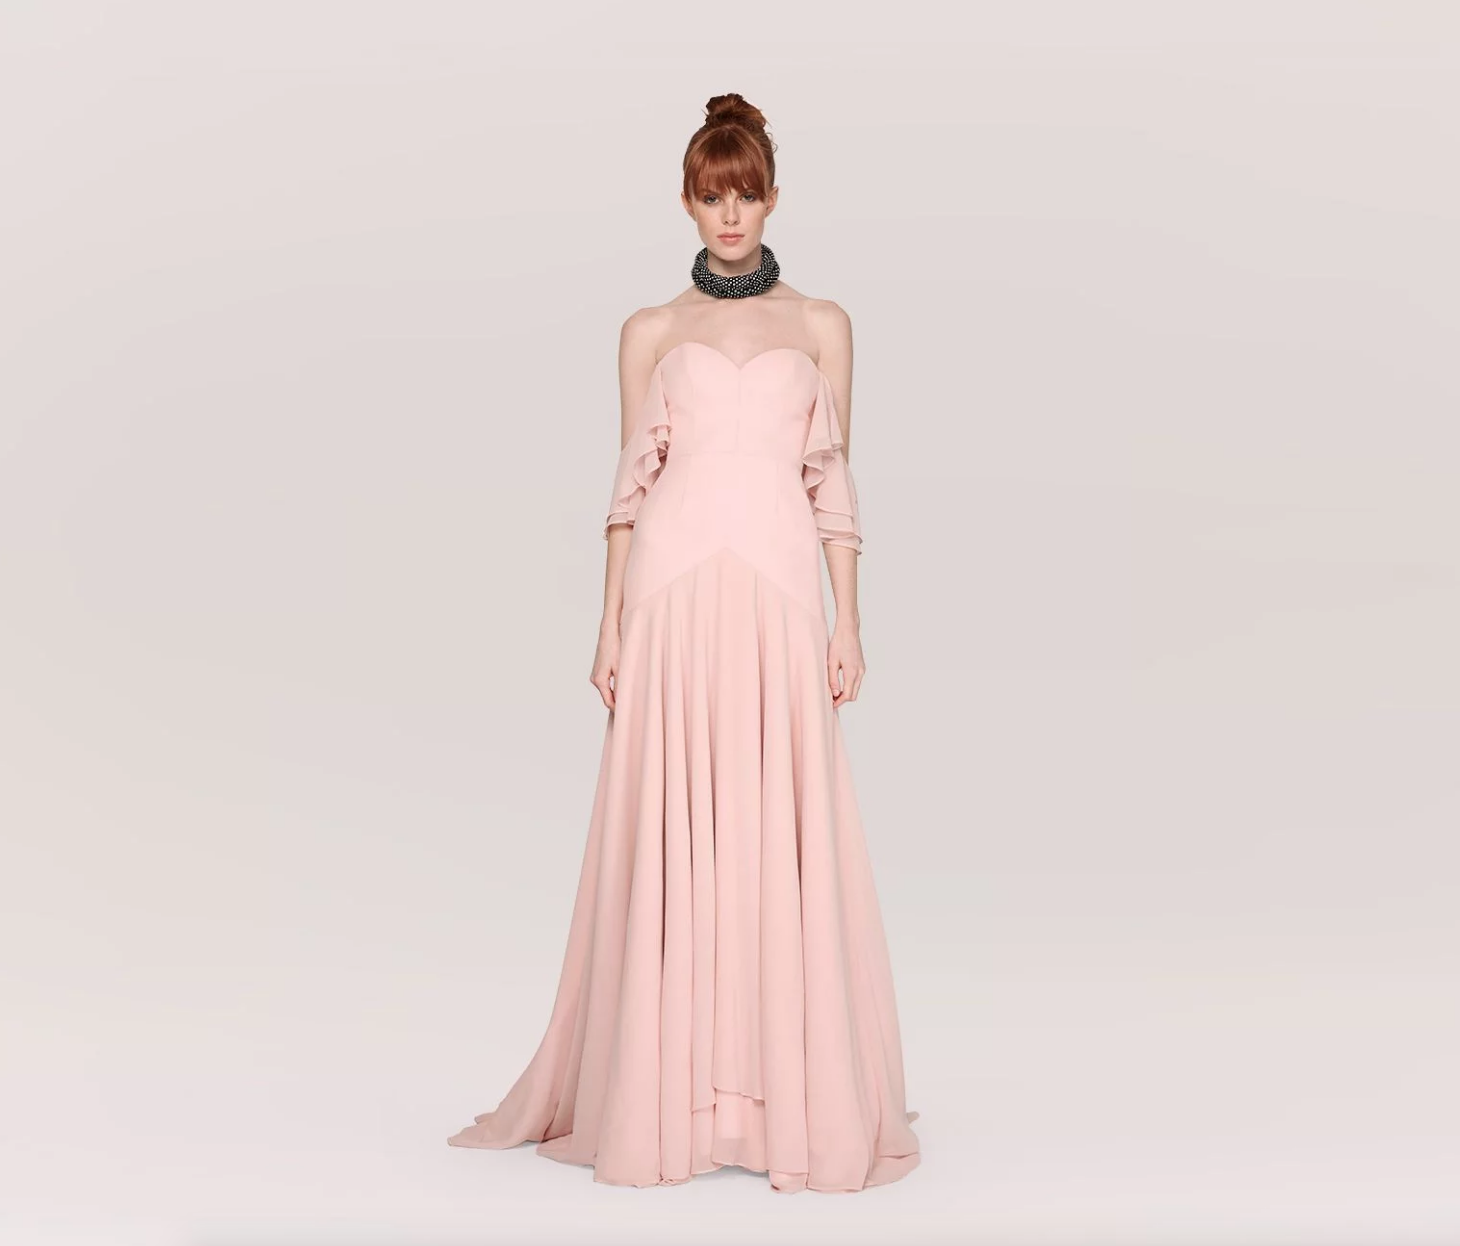 7e3a2f6b15a 26 Best Cheap Prom Dresses 2019 - Where to Buy Affordable Prom Dresses